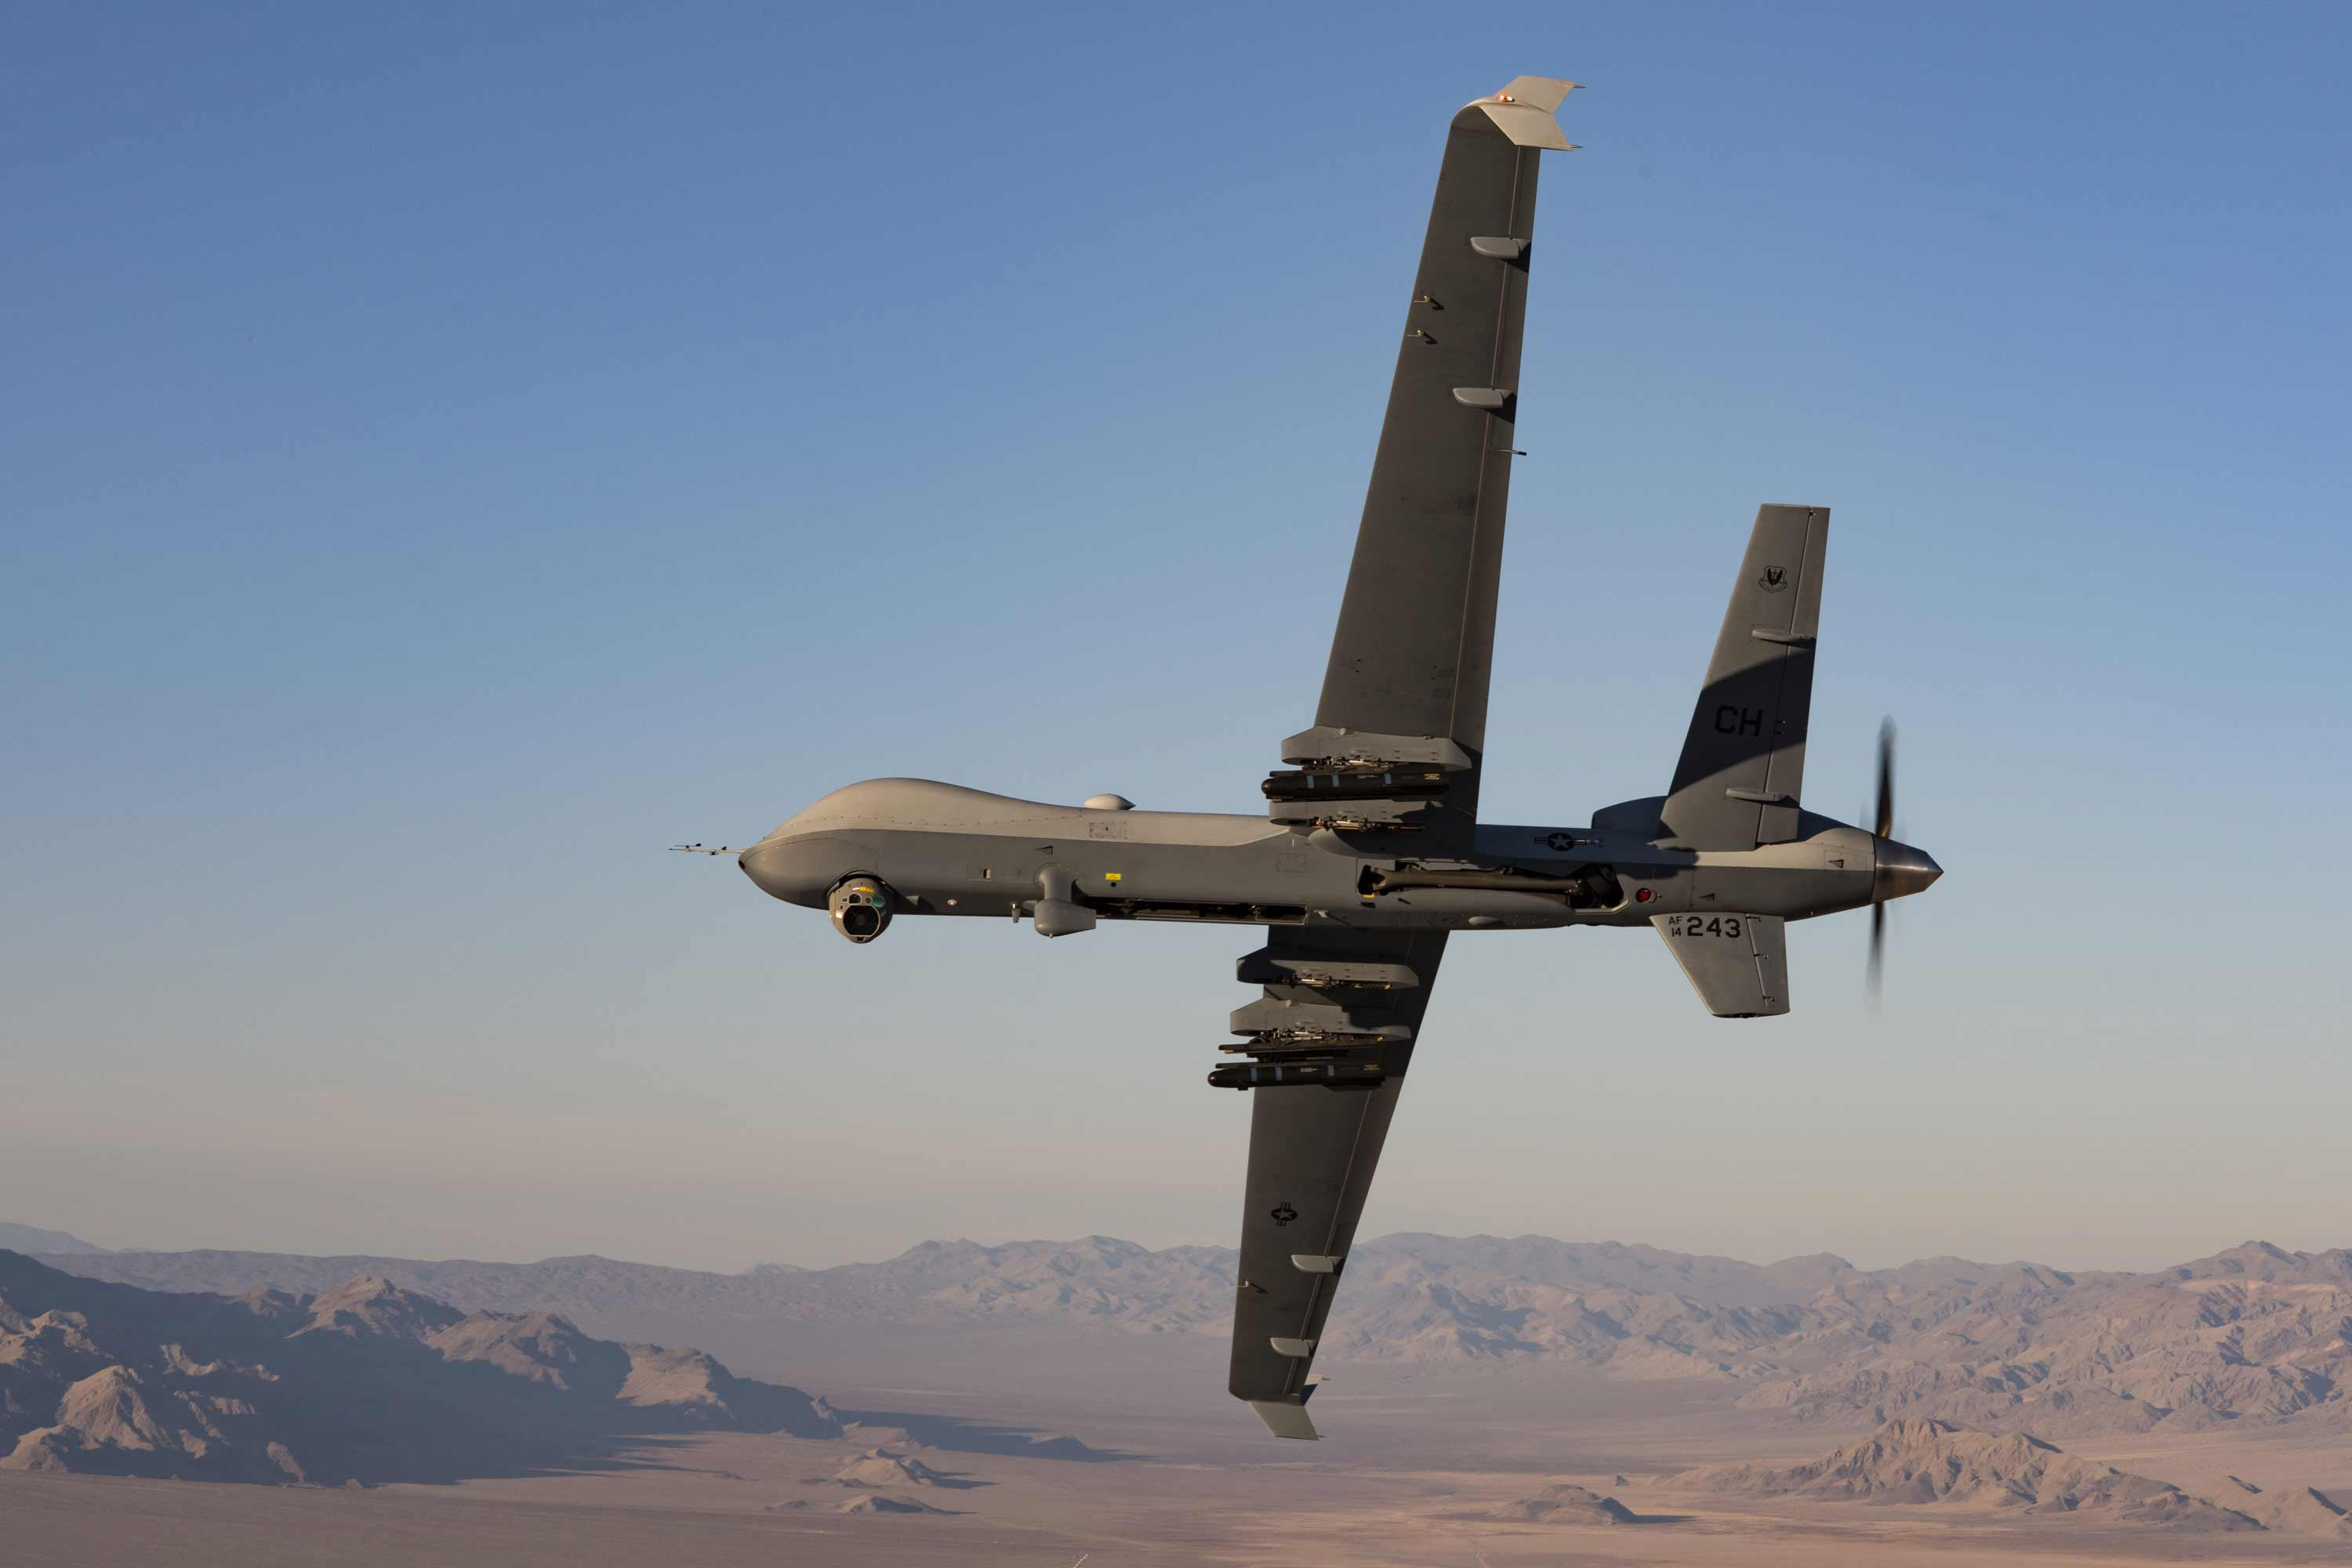 Reaper Drone Replacement Requirements Now Include Air-To